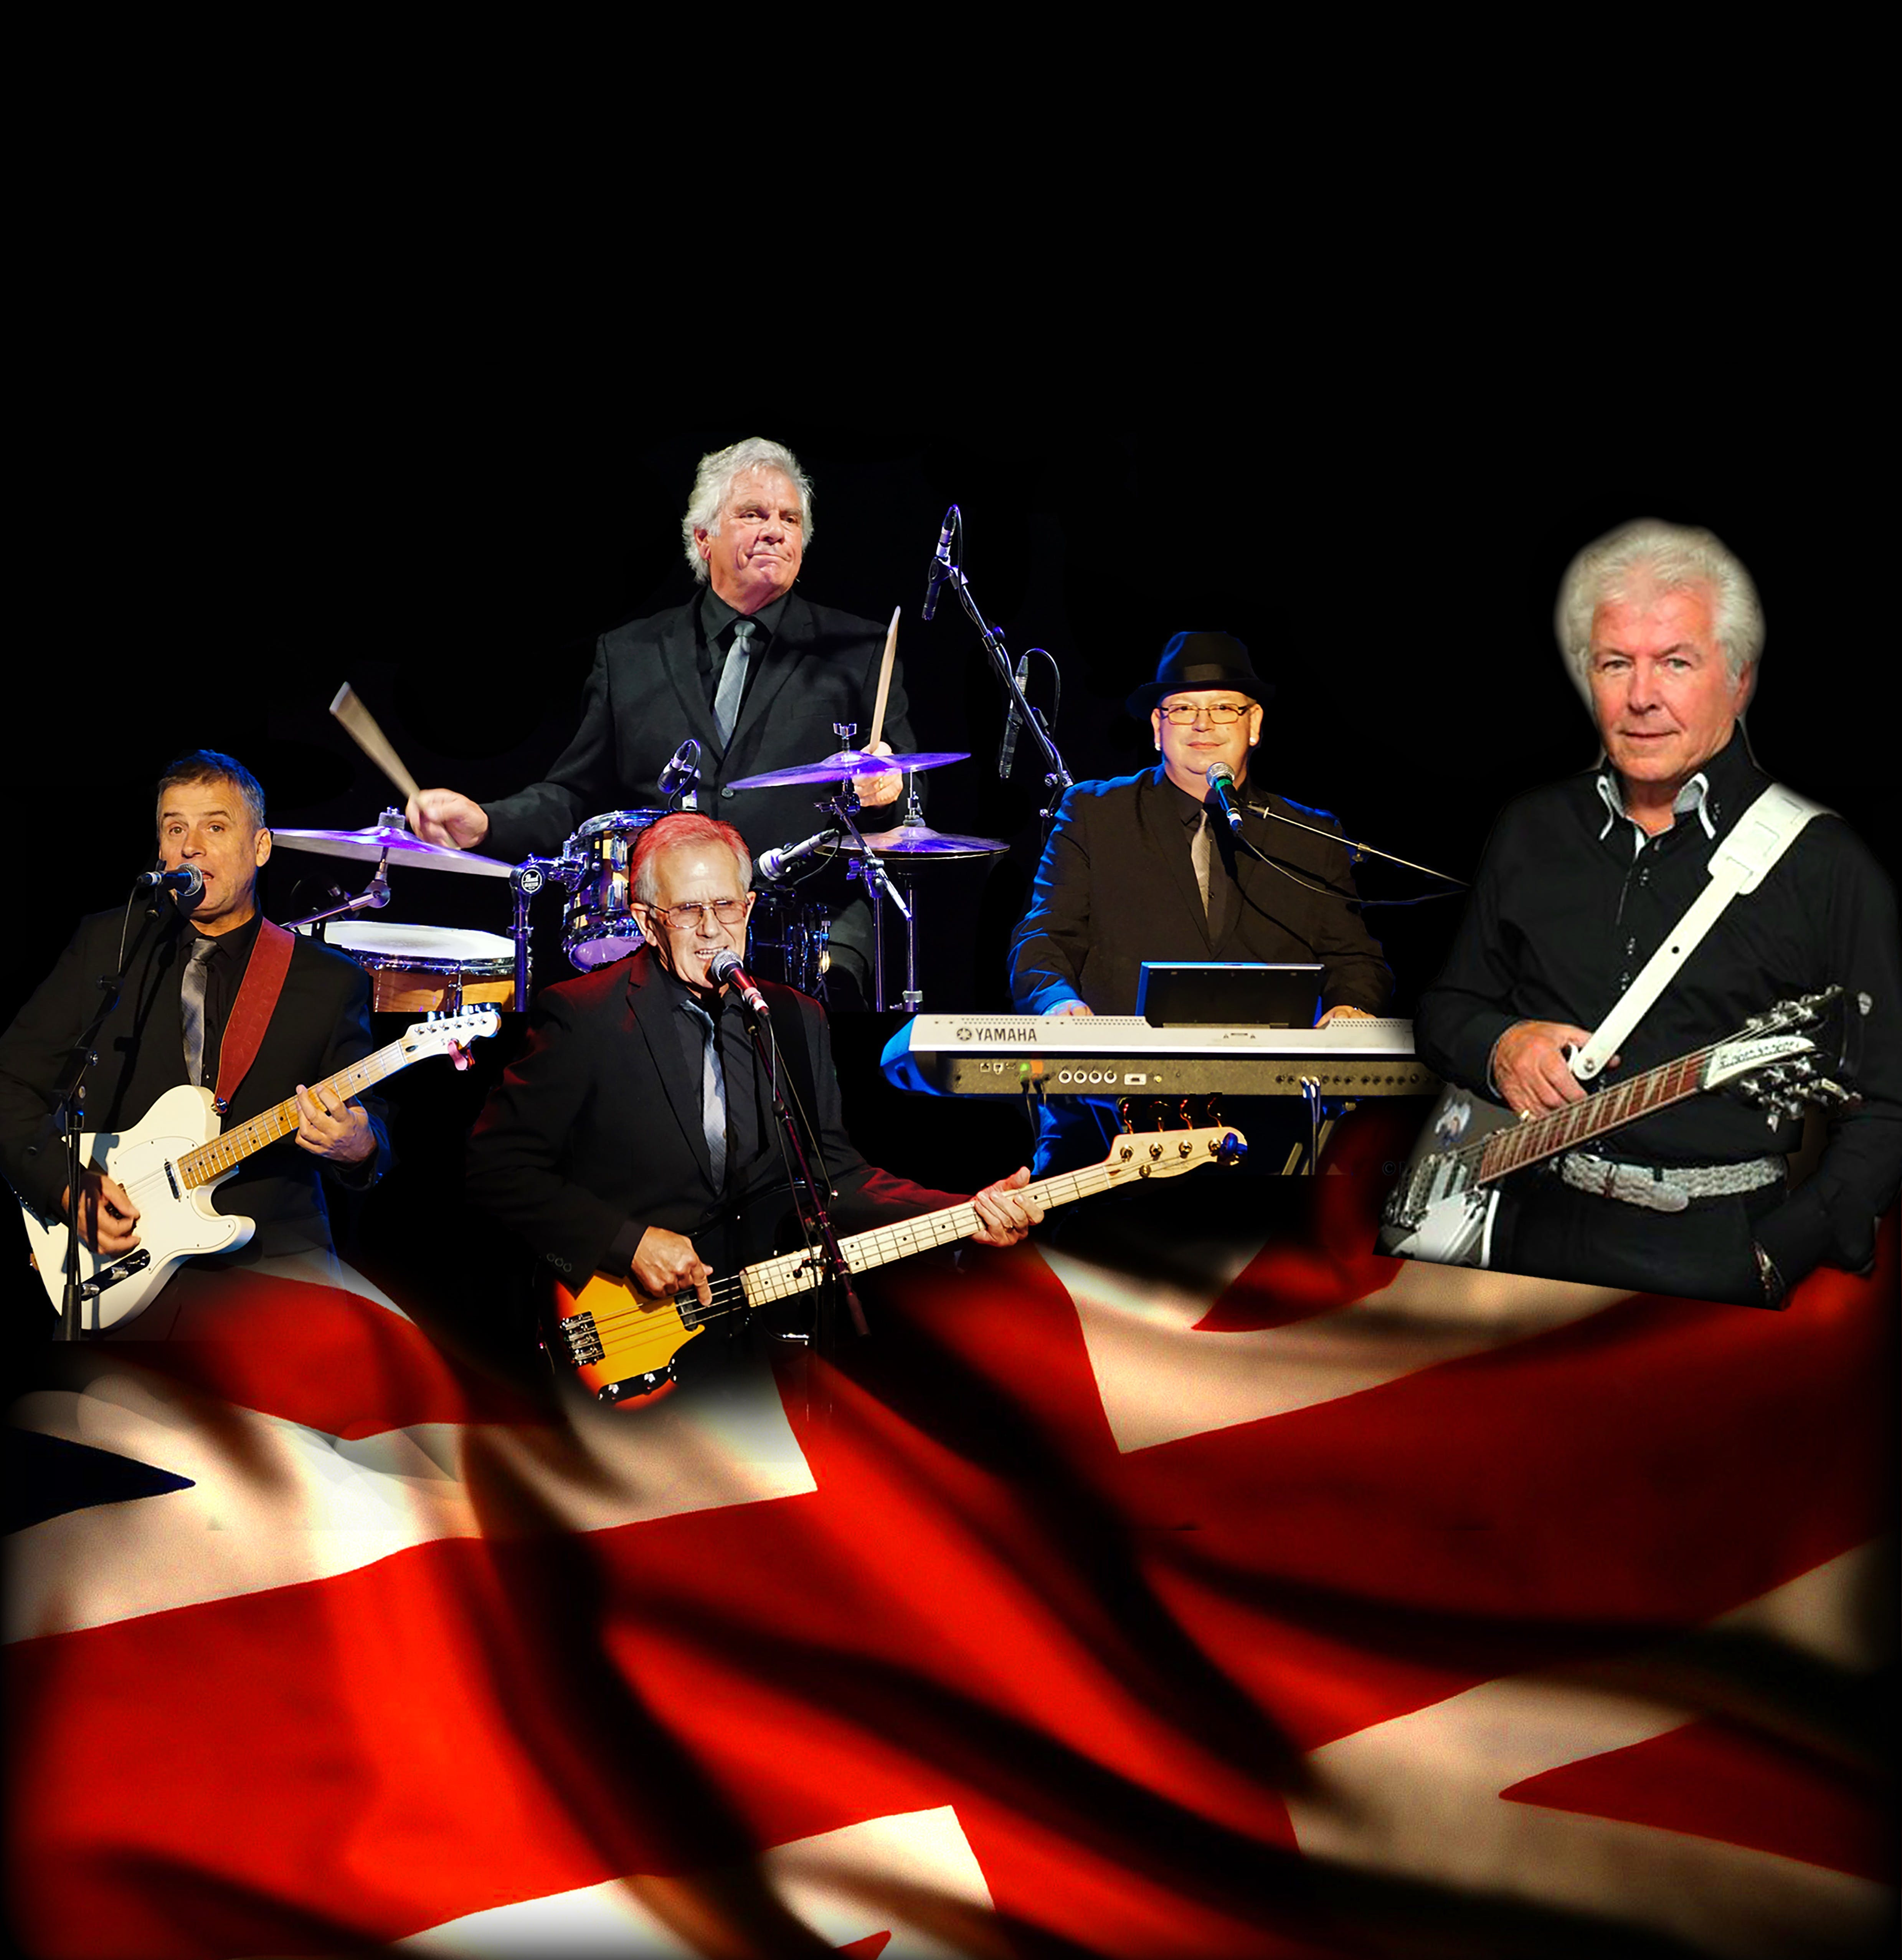 Herman's Hermits with Special Guest Mike Pender - The Six O'Clock Hop - ACT Tourism